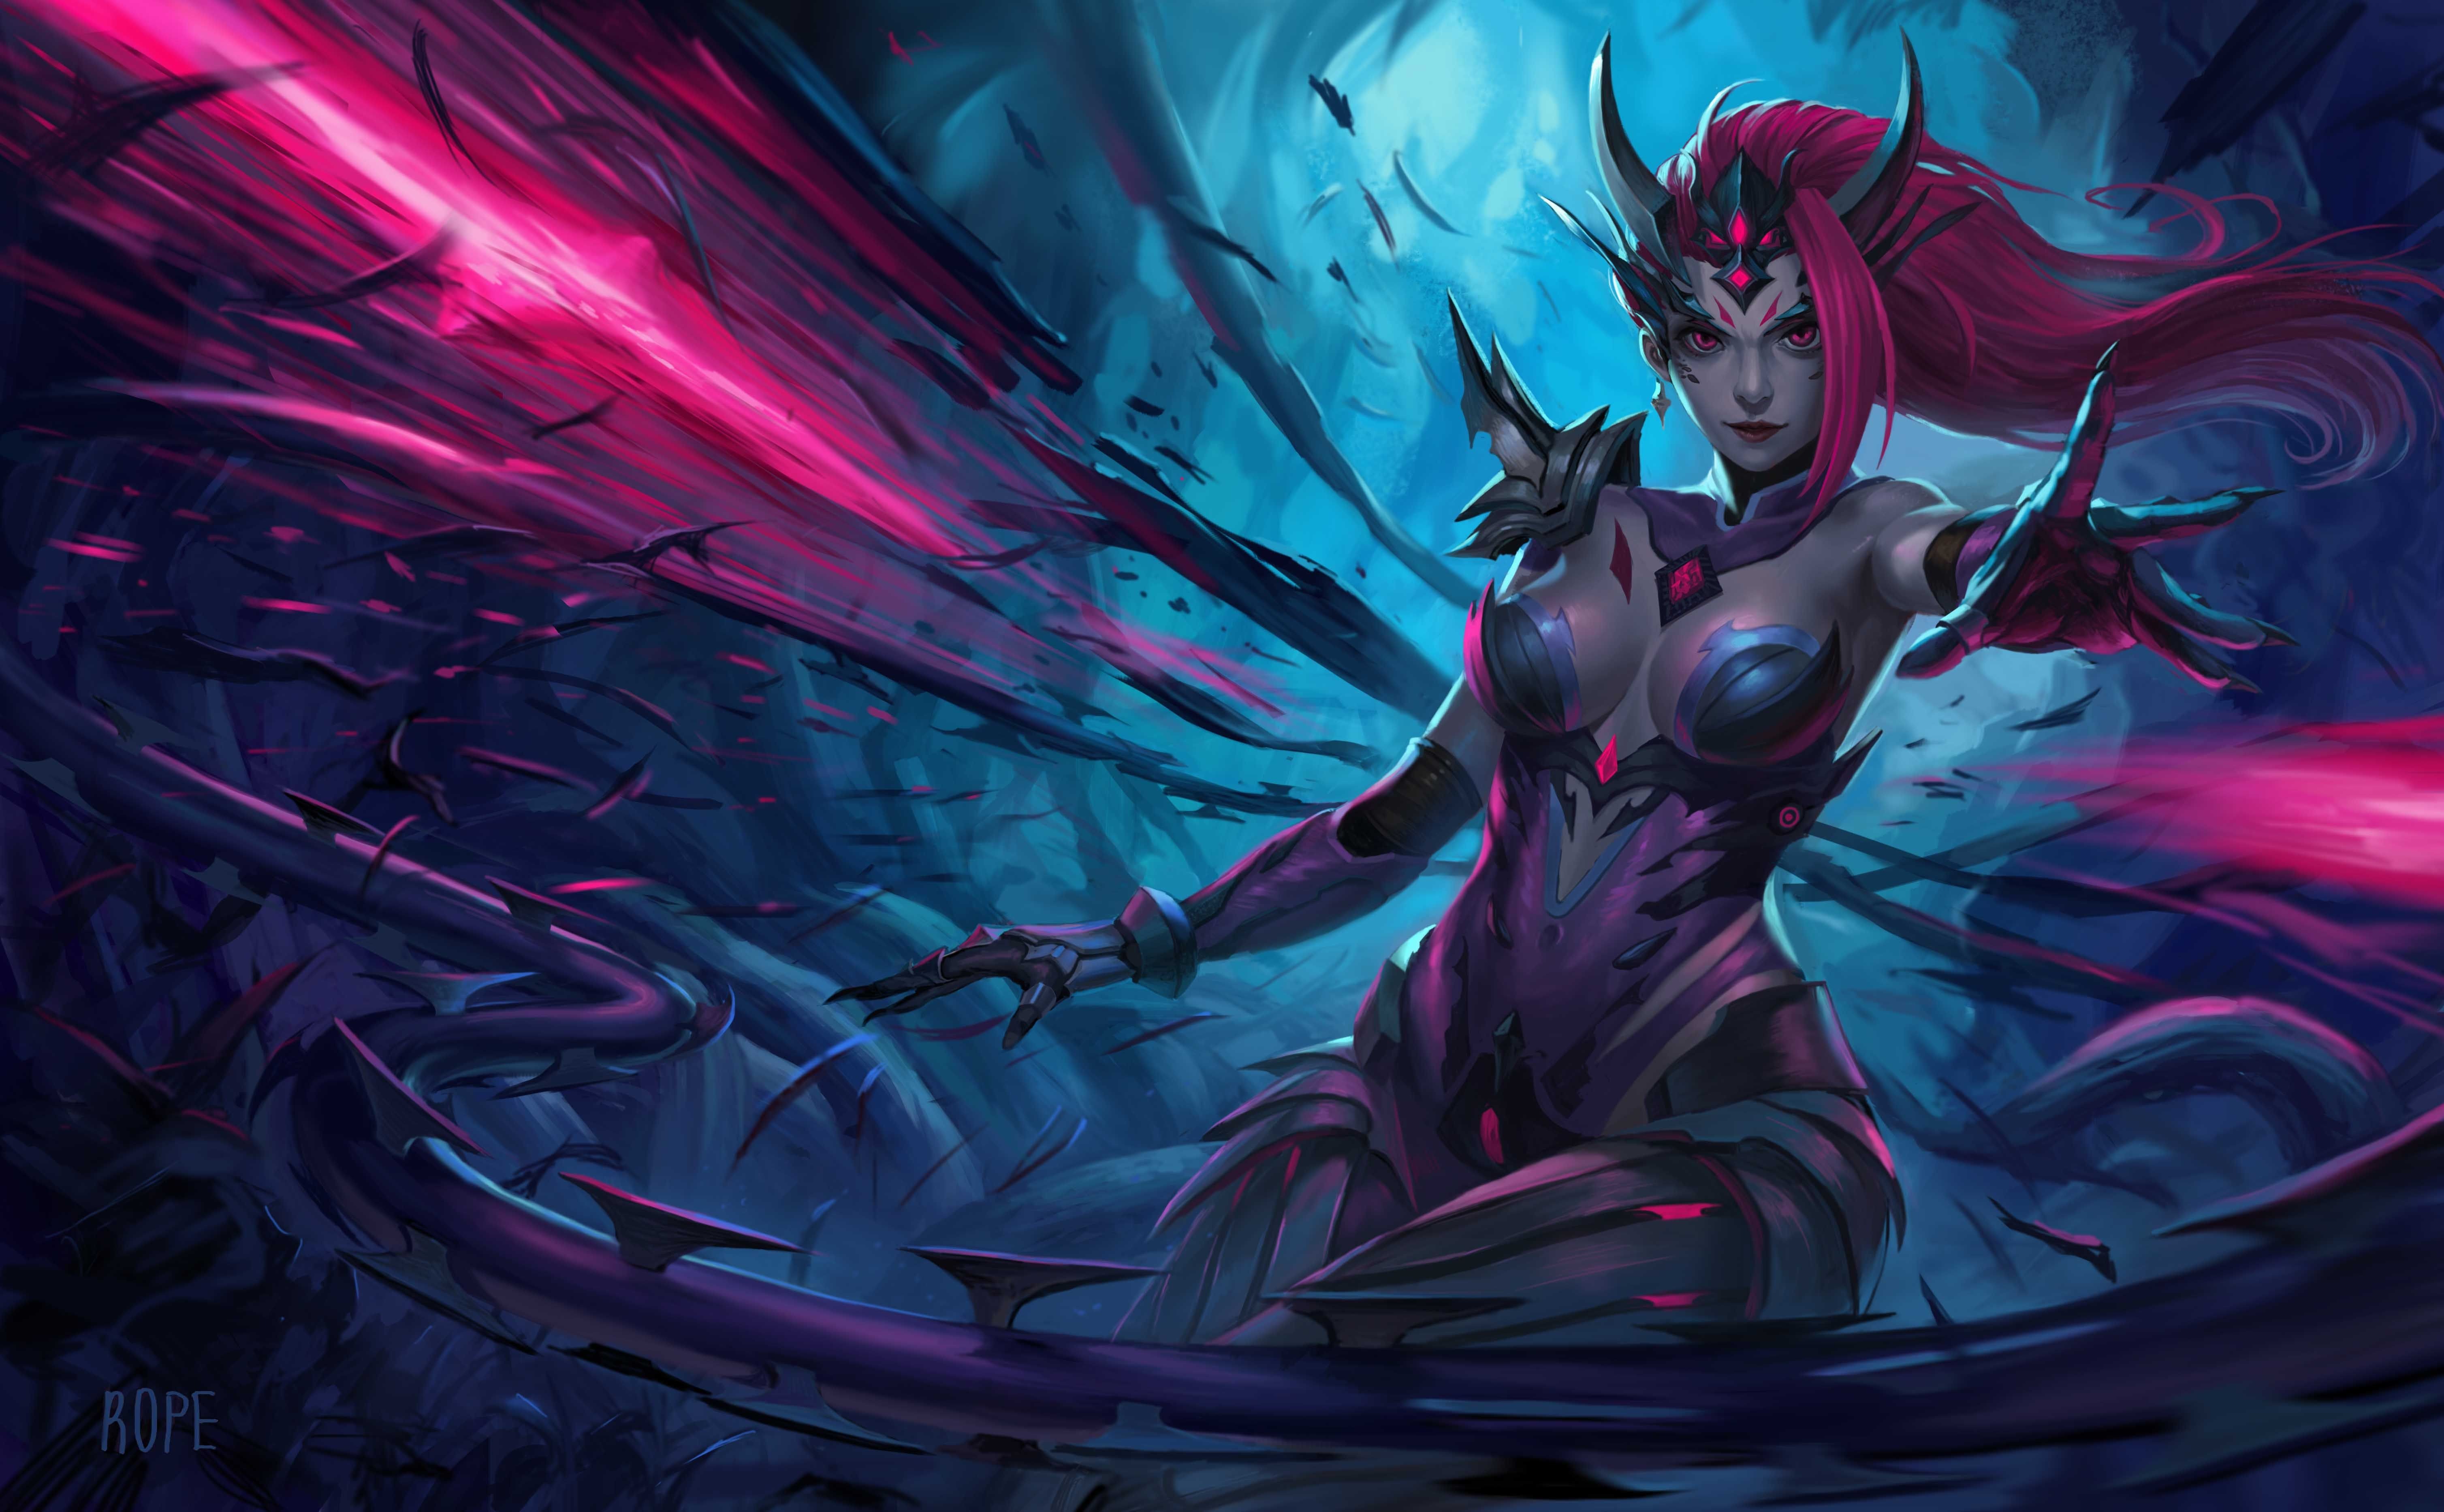 30 zyra league of legends hd wallpapers backgrounds images 30 zyra league of legends hd wallpapers backgrounds voltagebd Choice Image